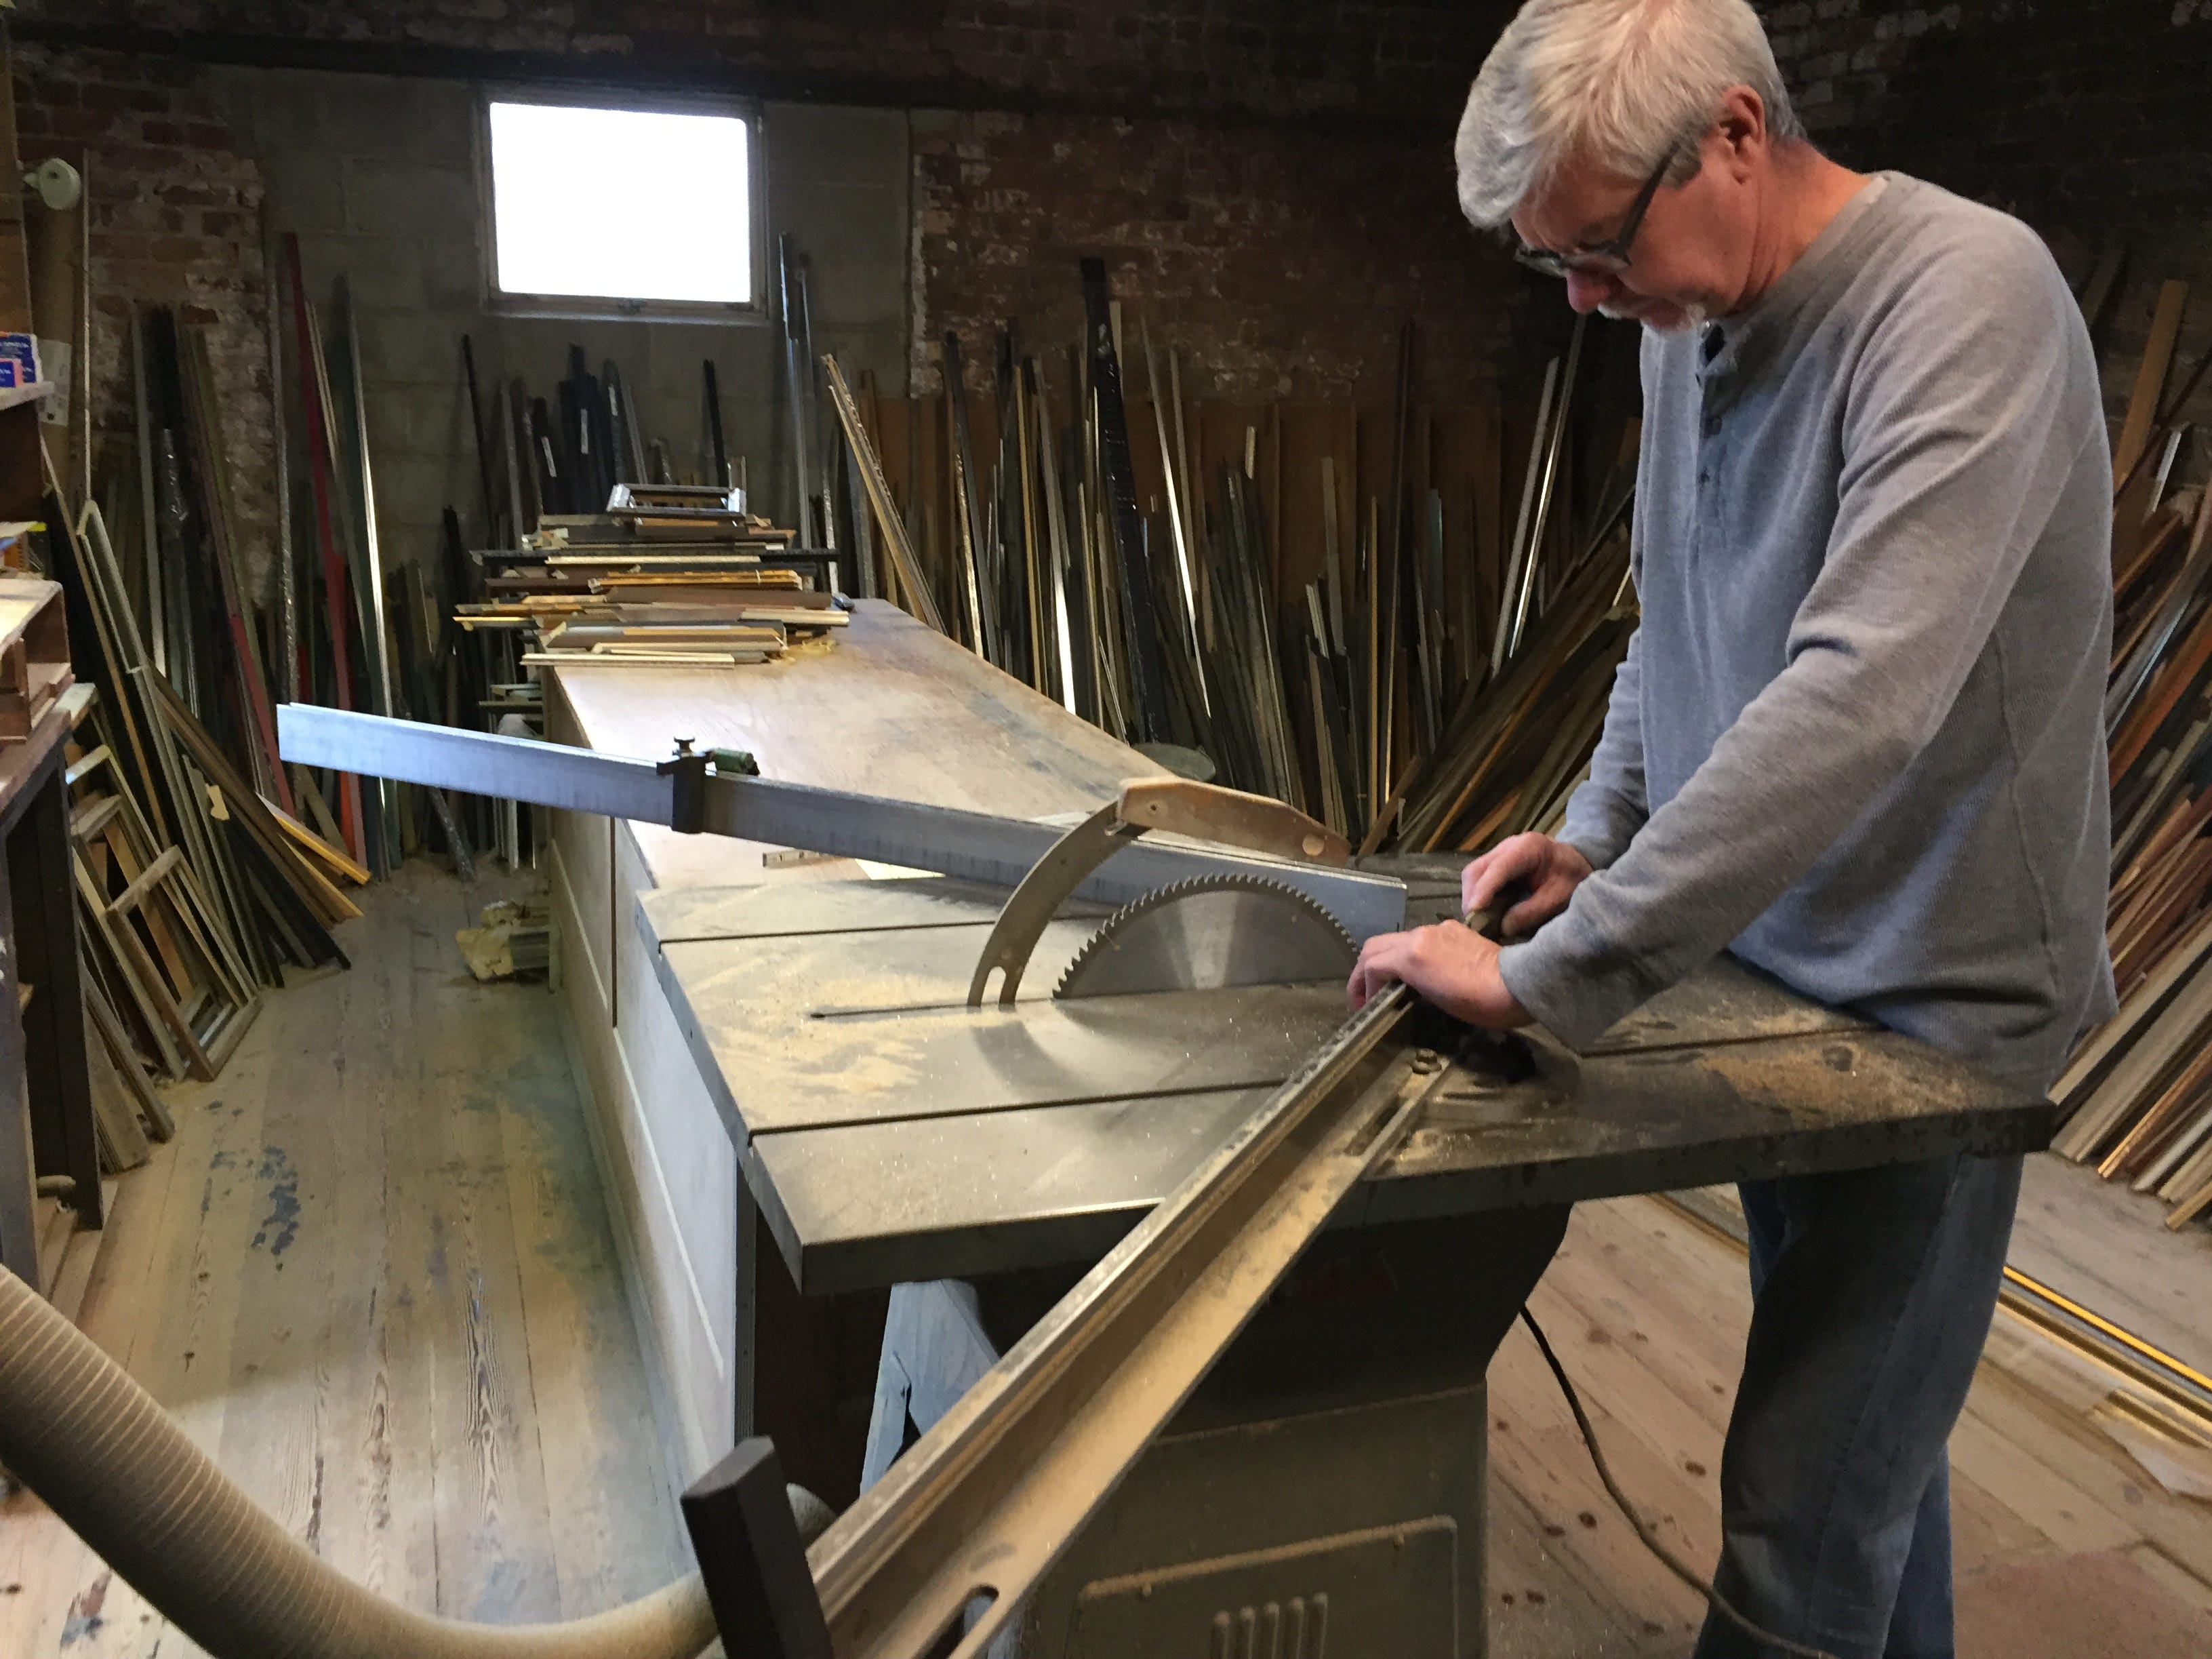 Dennis Roddy, one of the owners of Milwaukee Moulding & Frame, stands at the table saw in the shop's second-floor workshop.